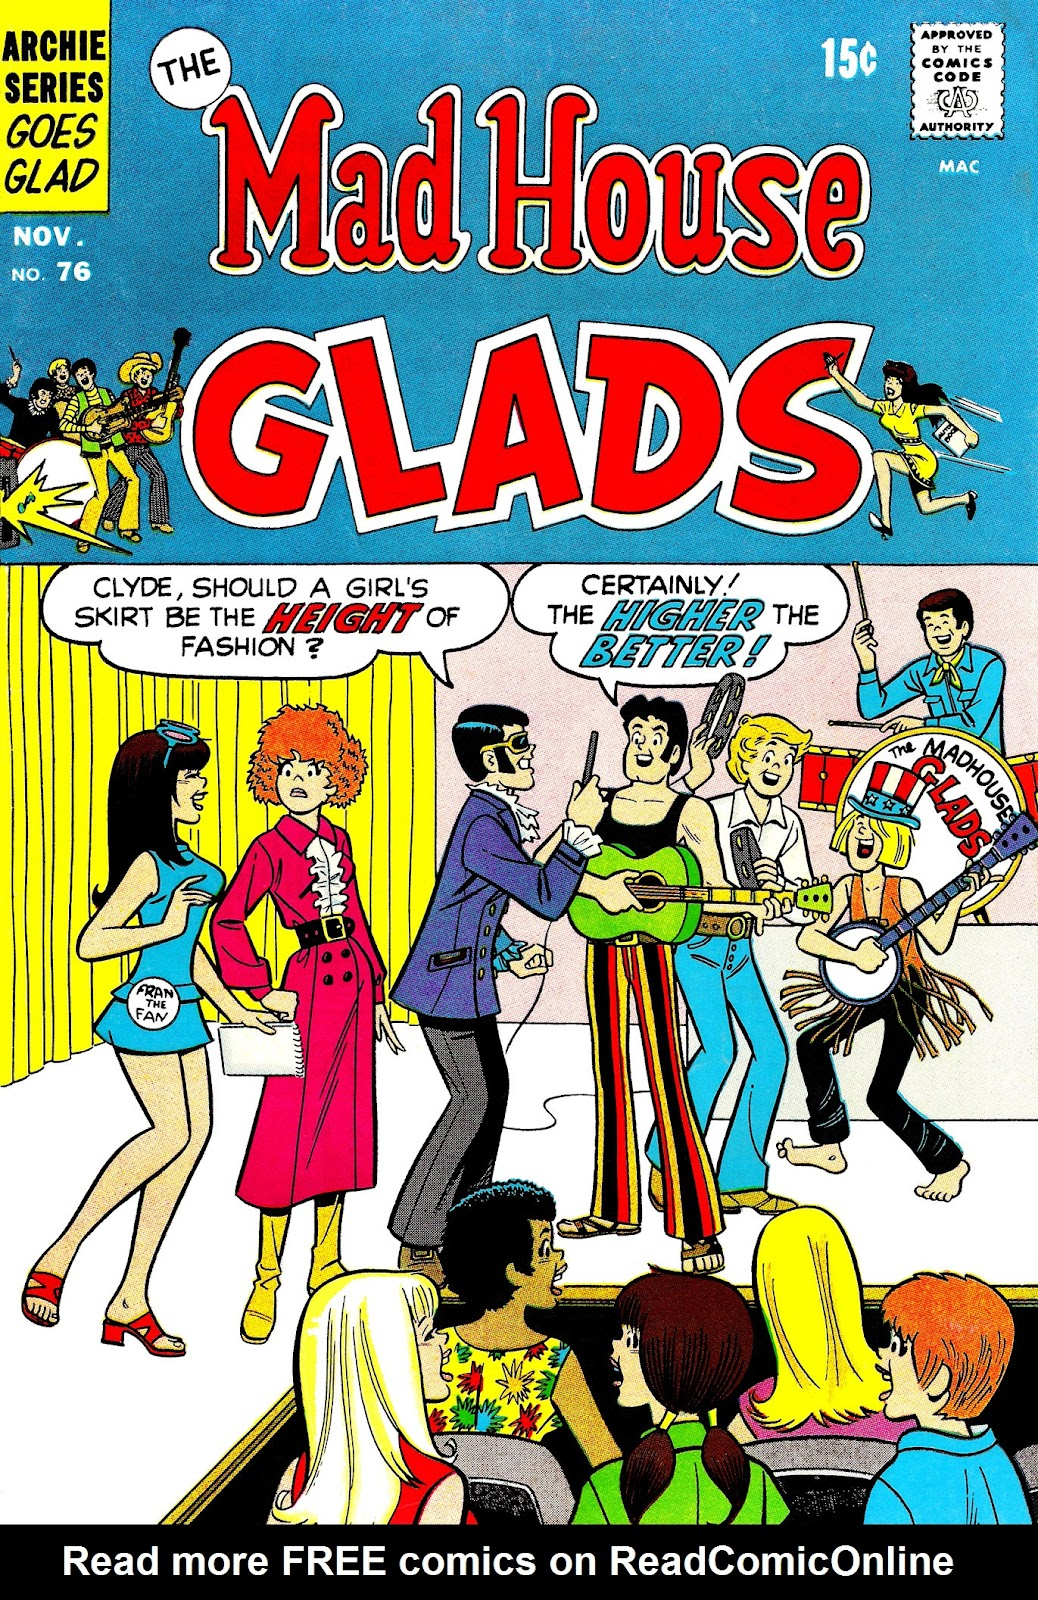 Read online The Mad House Glads comic -  Issue #76 - 1